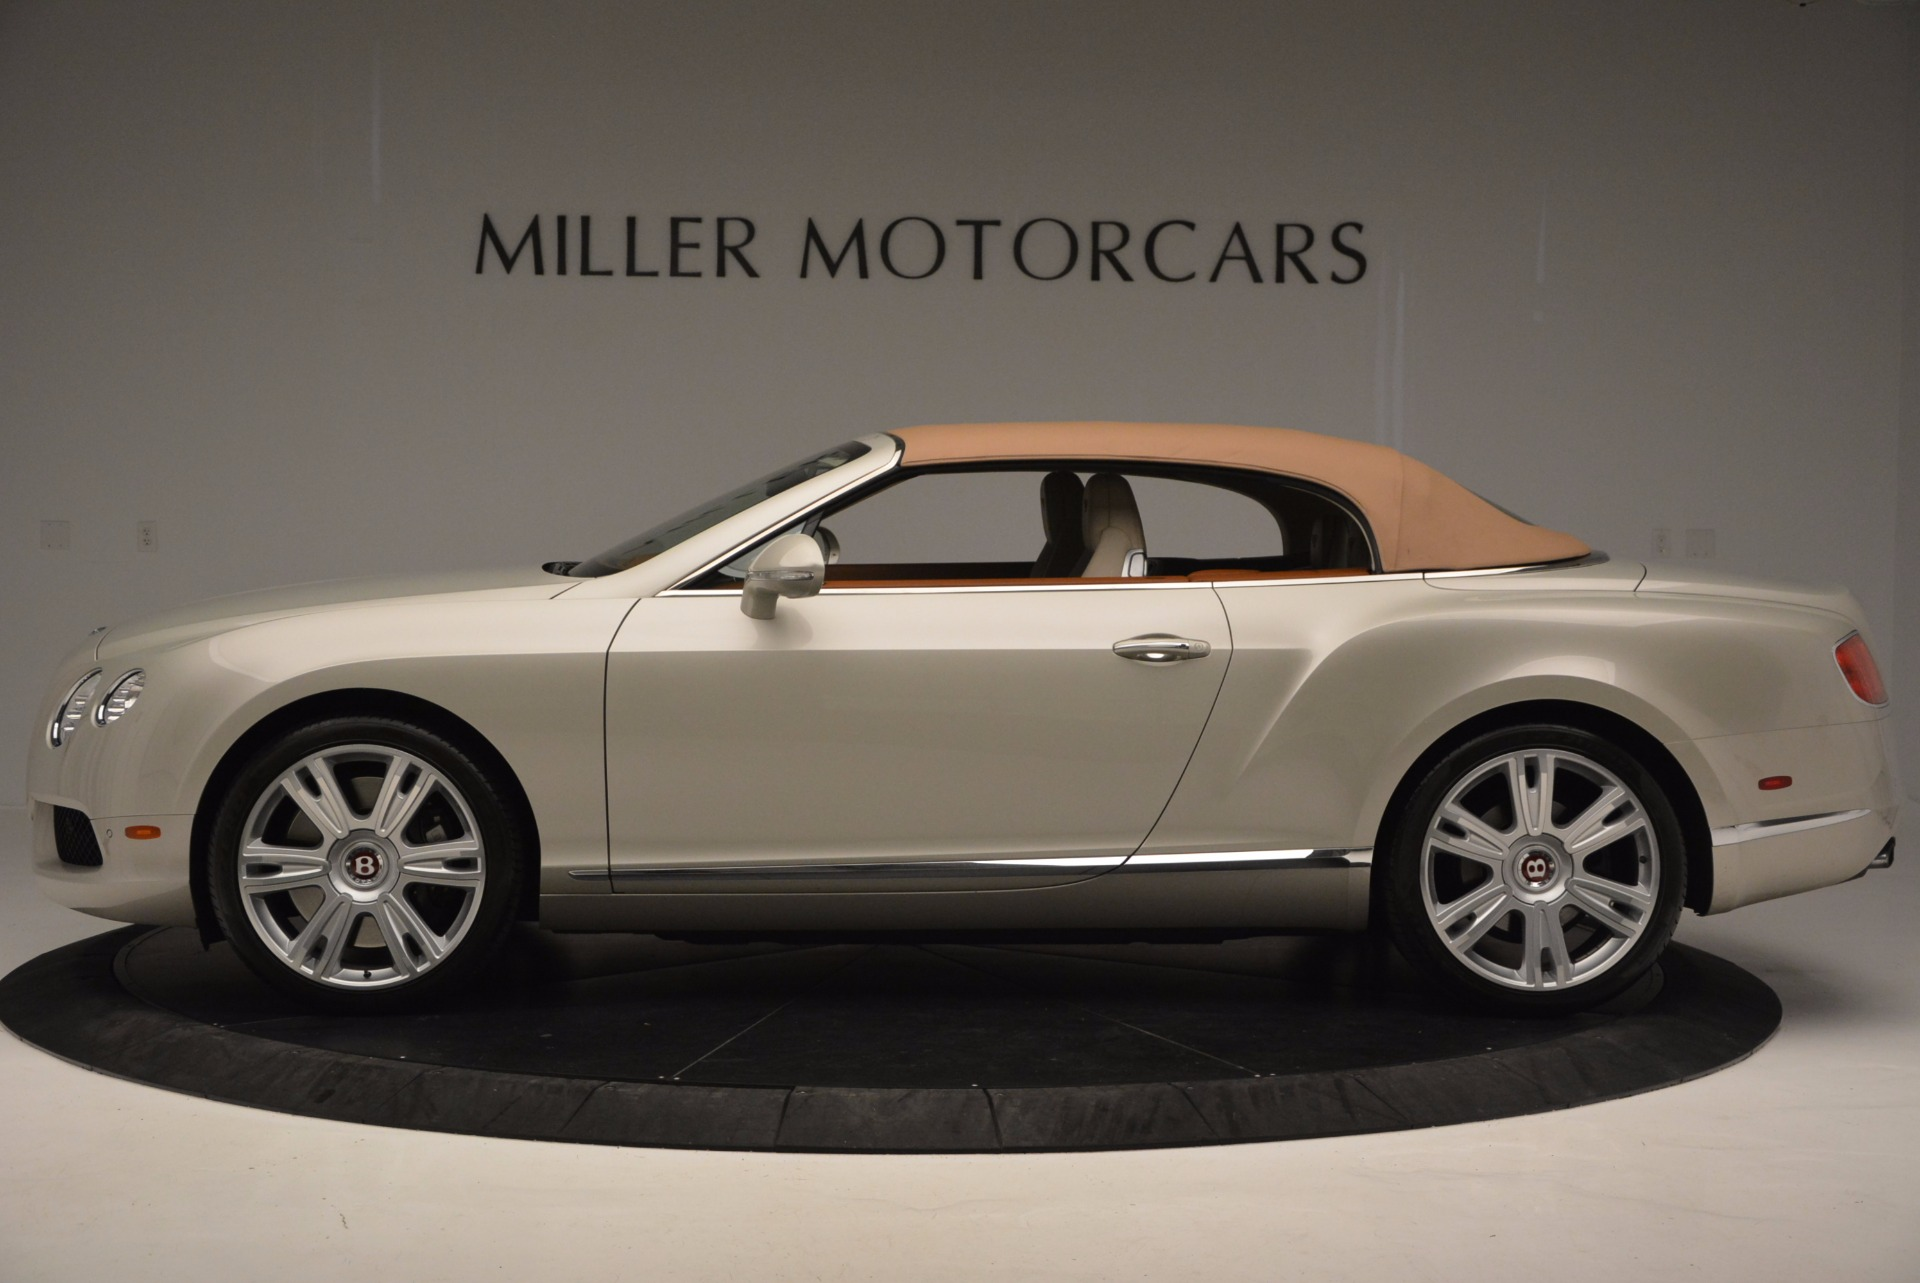 Used 2013 Bentley Continental GTC V8  For Sale In Greenwich, CT. Alfa Romeo of Greenwich, 7108 675_p16